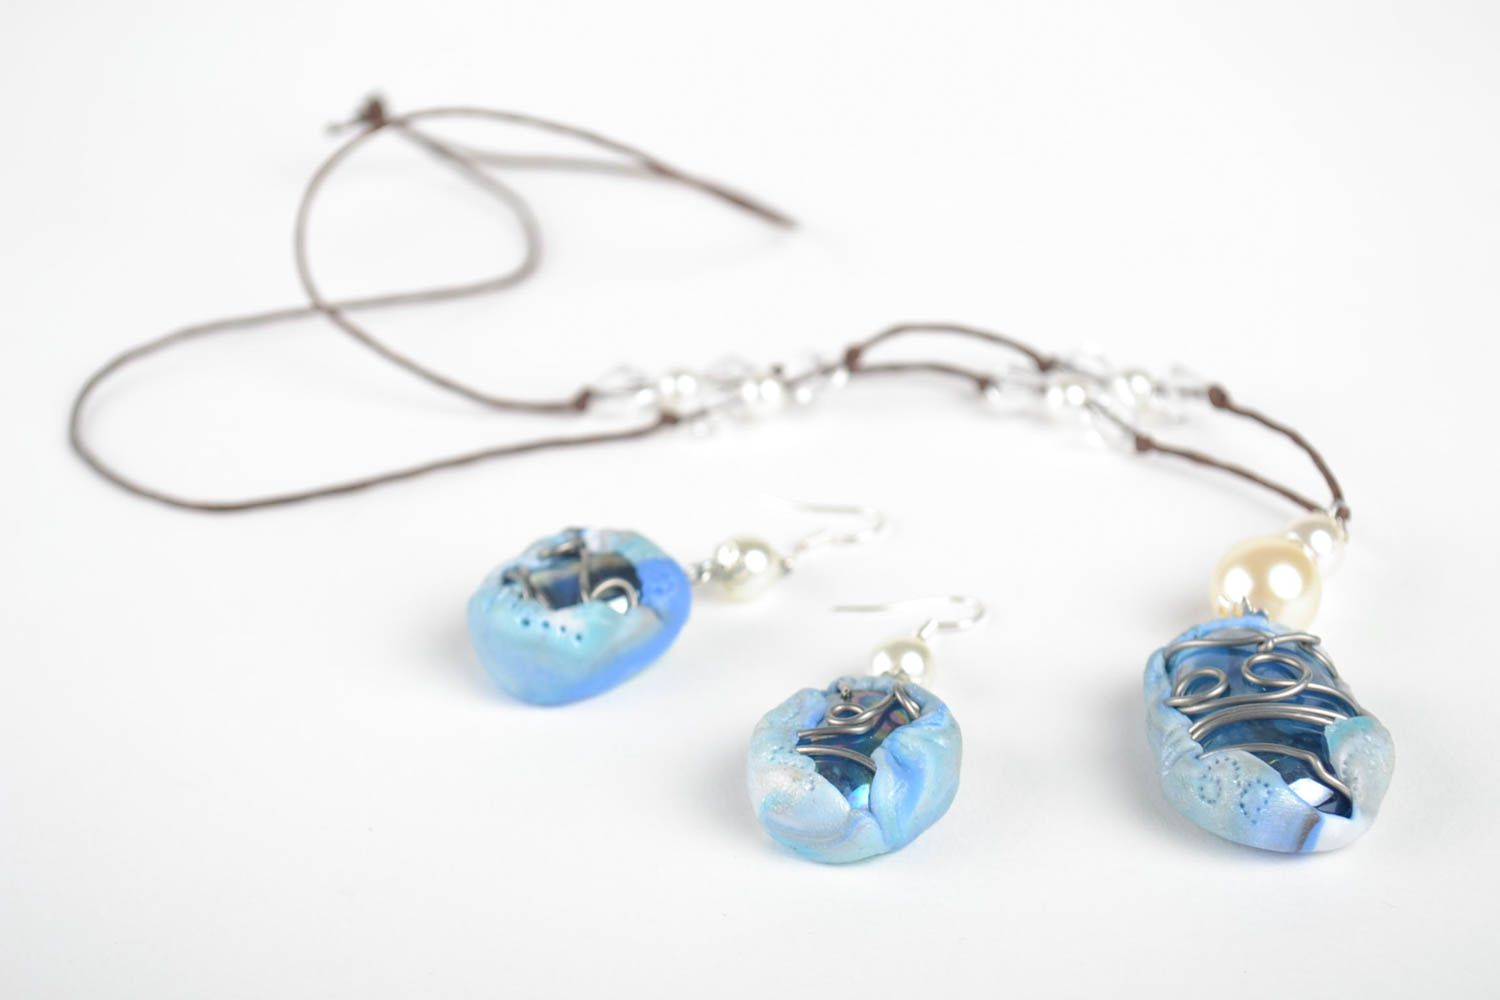 Jewelry set handmade earrings pendant necklace polymer clay fashion accessories photo 2